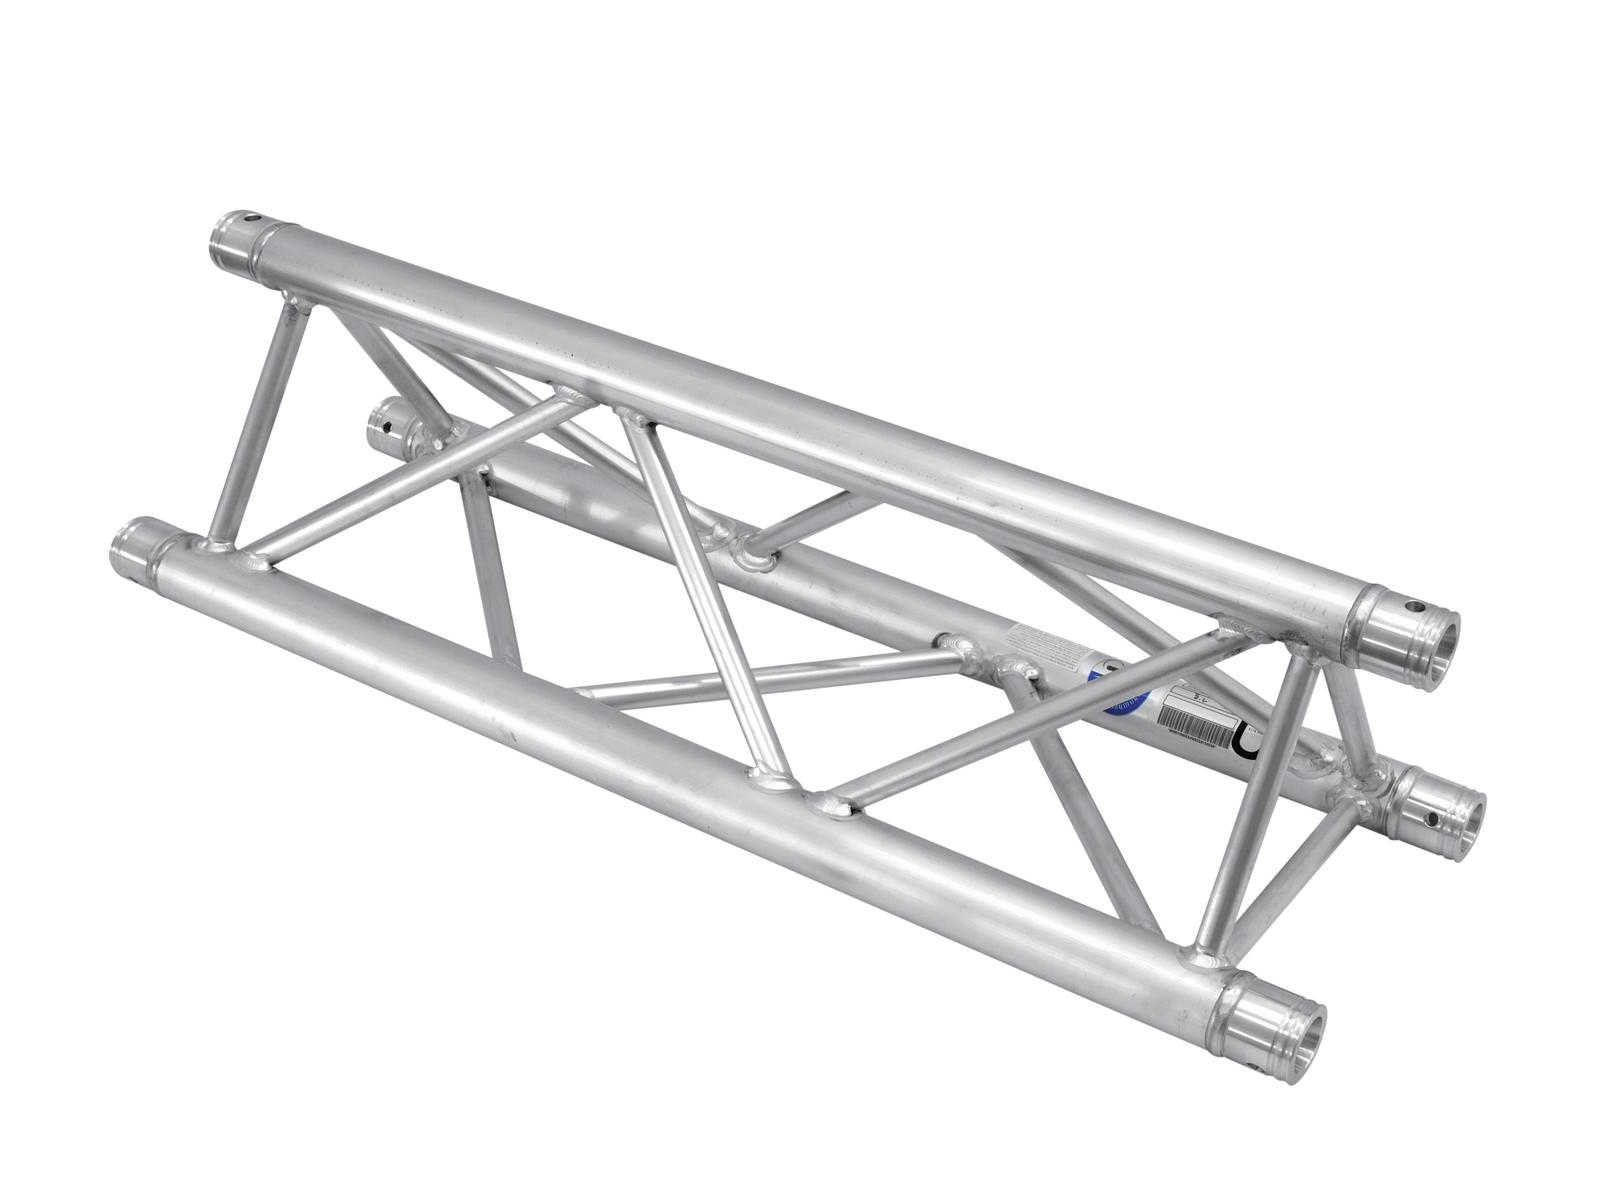 ALUTRUSS TRILOCK E-GL33 290 3 vie traverse